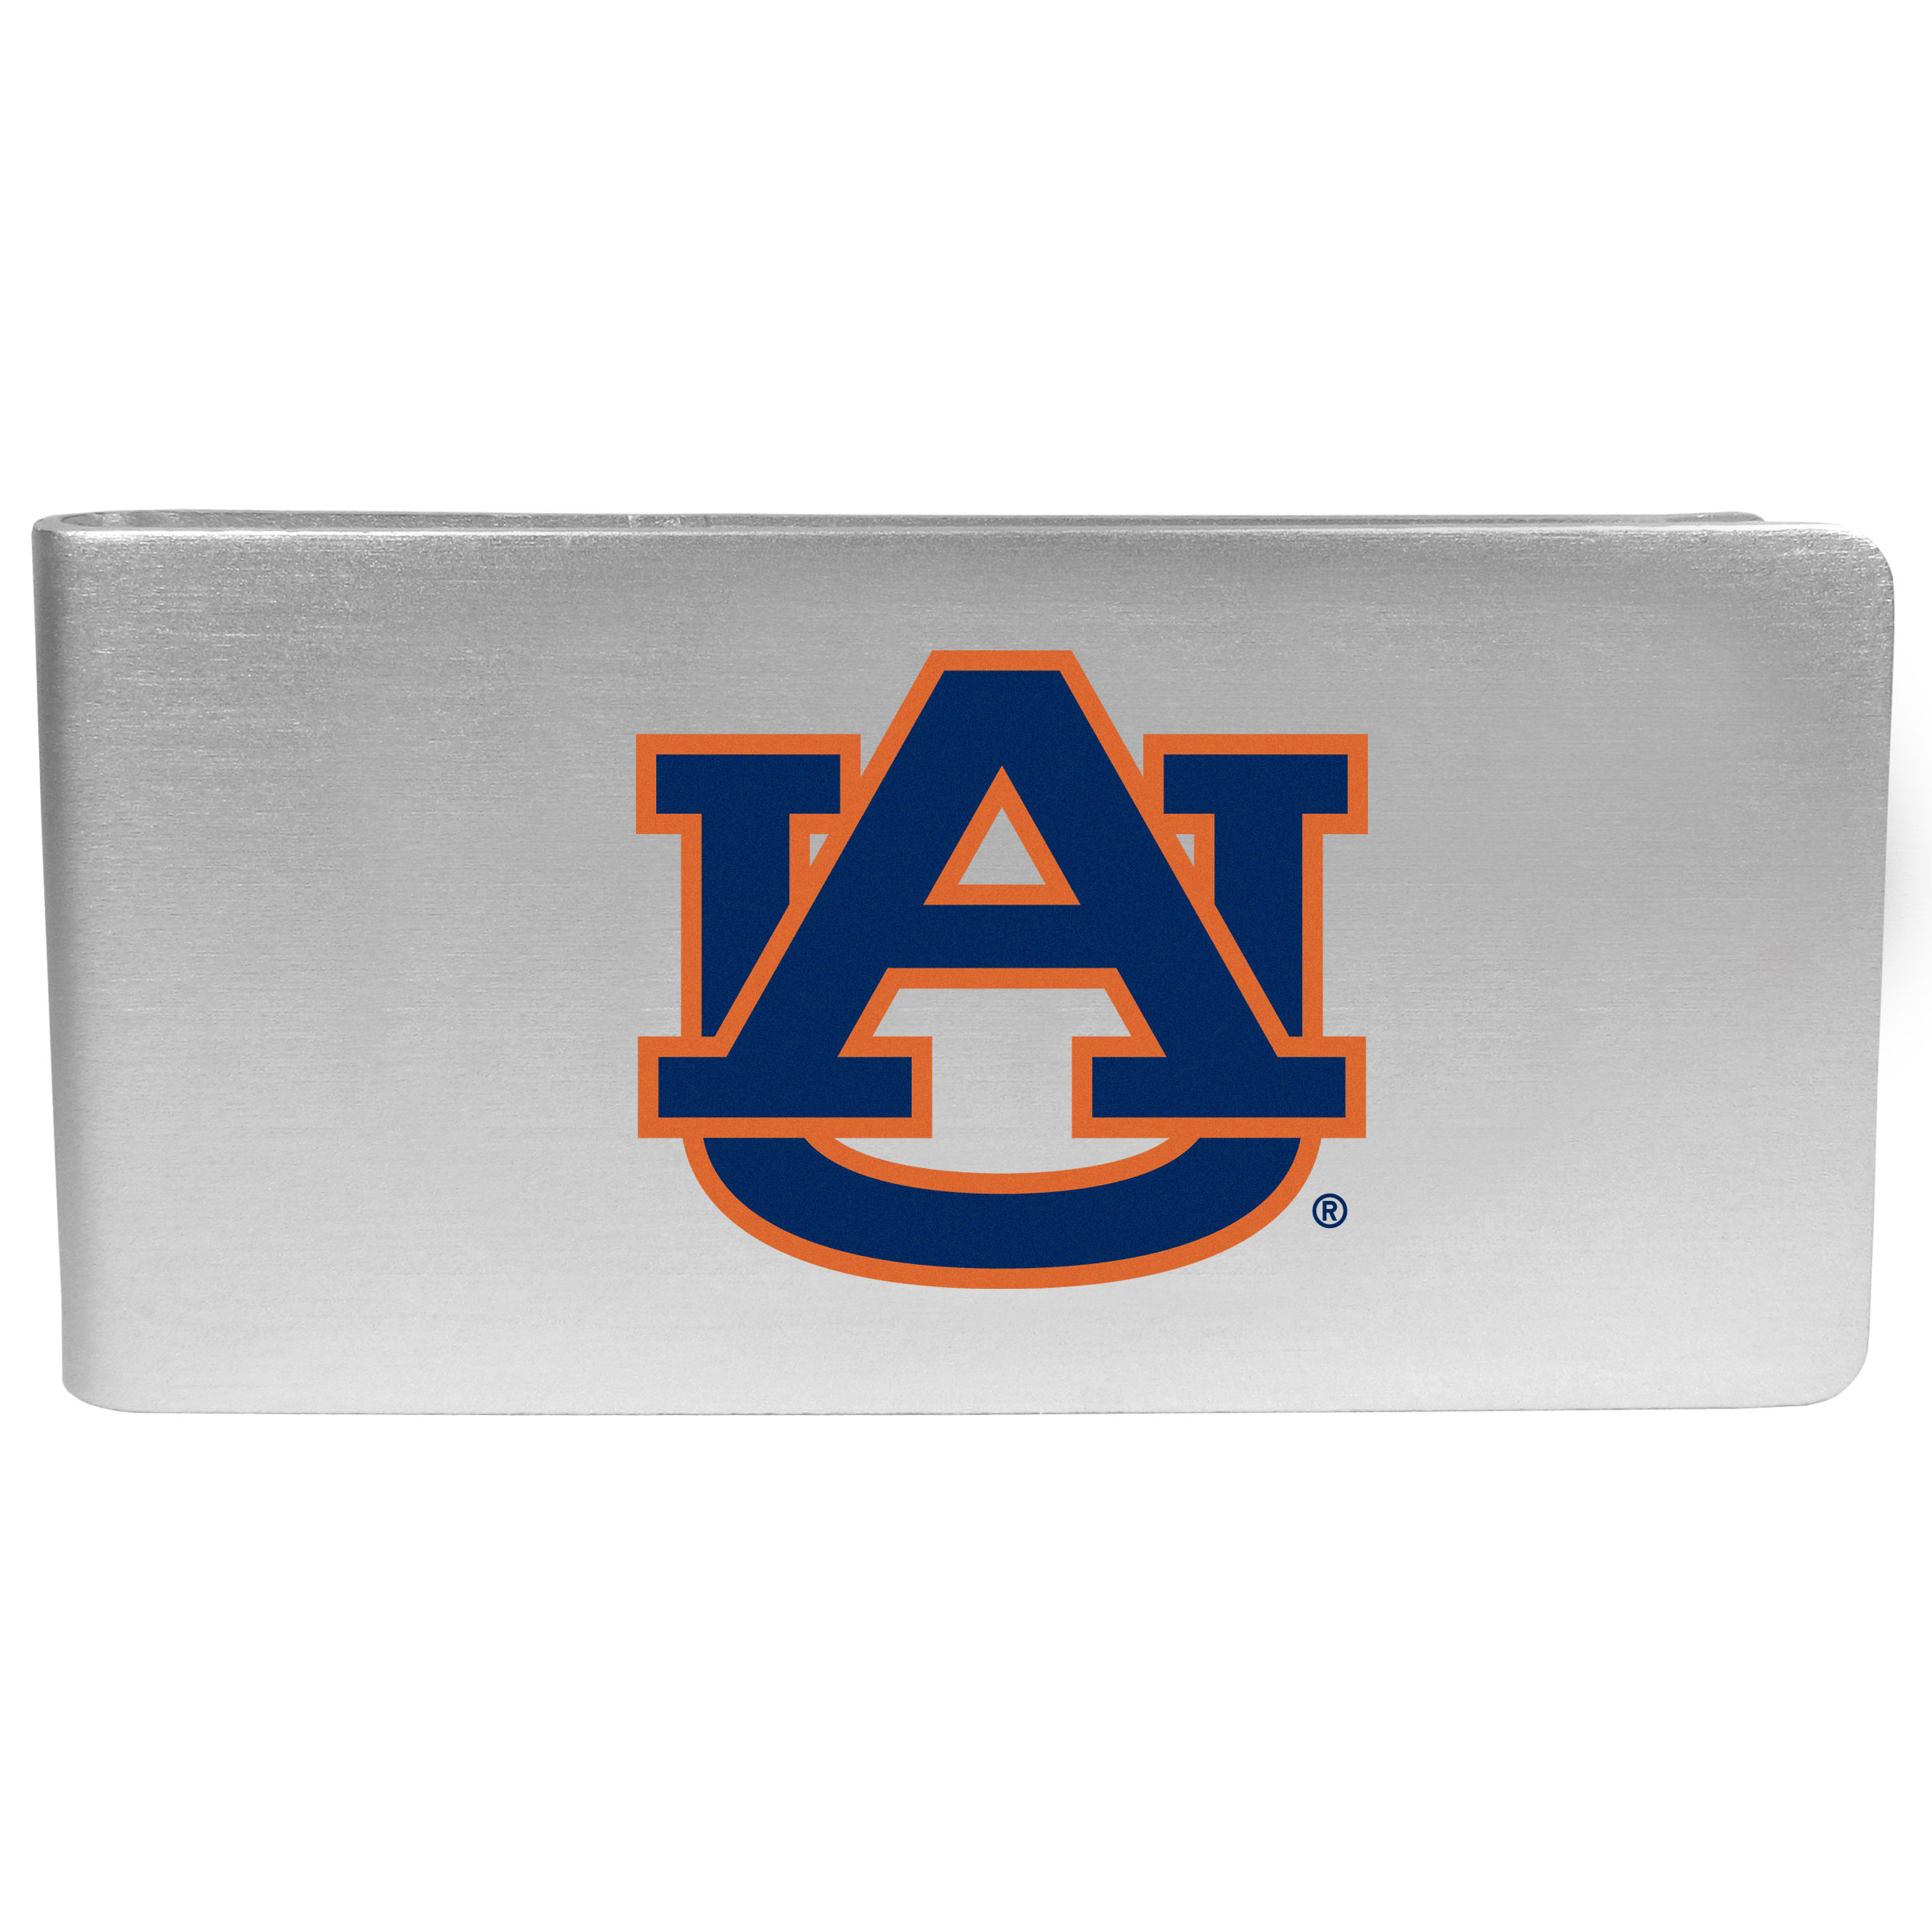 Auburn Tigers Logo Money Clip - Our brushed metal money clip has classic style and functionality. The attractive clip features the Auburn Tigers logo expertly printed on front.